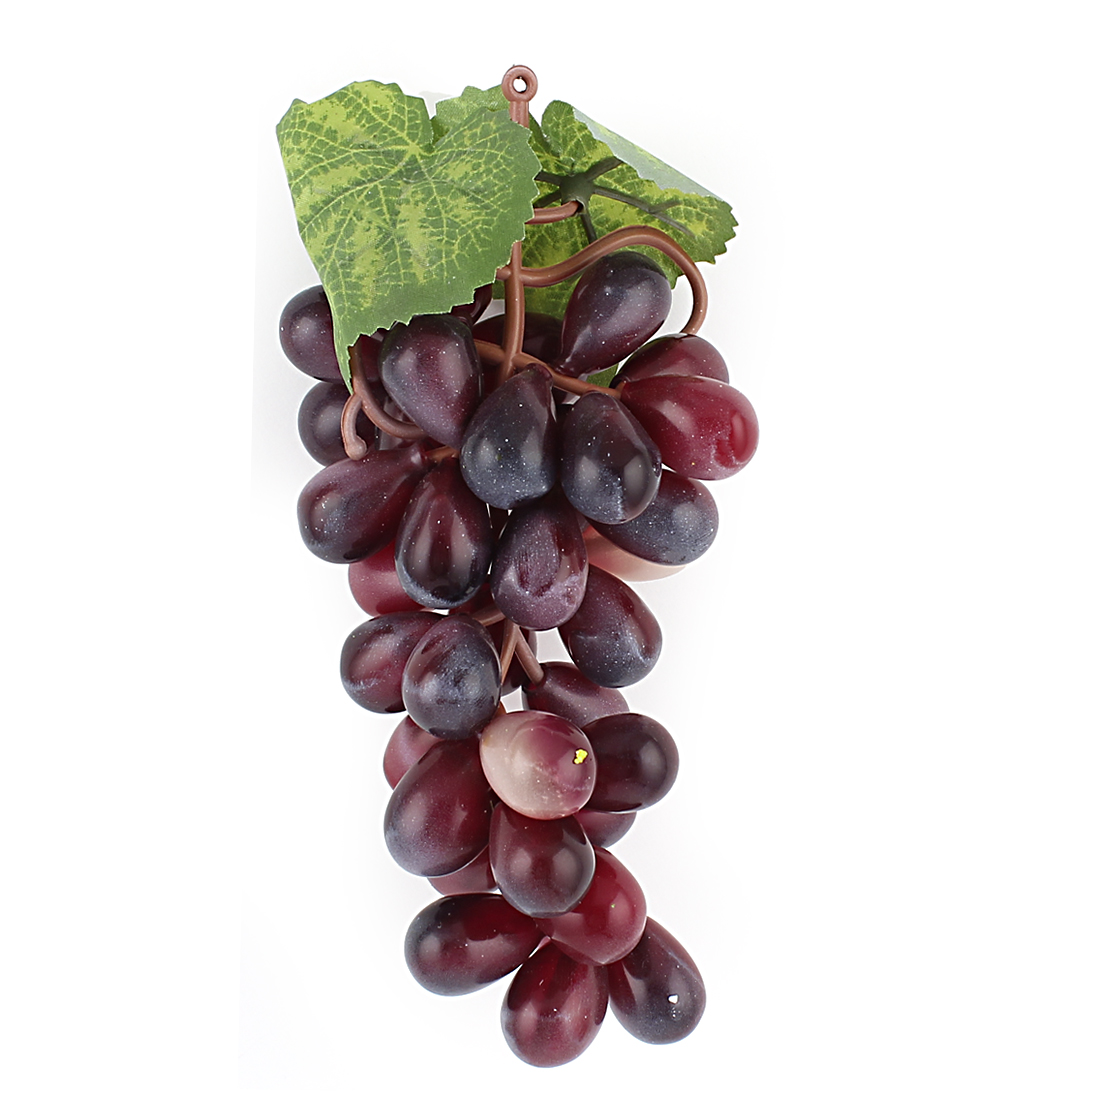 Manmade Simulation Grapes Desk Table Home Decoration Green Dark Purple 3 Pcs